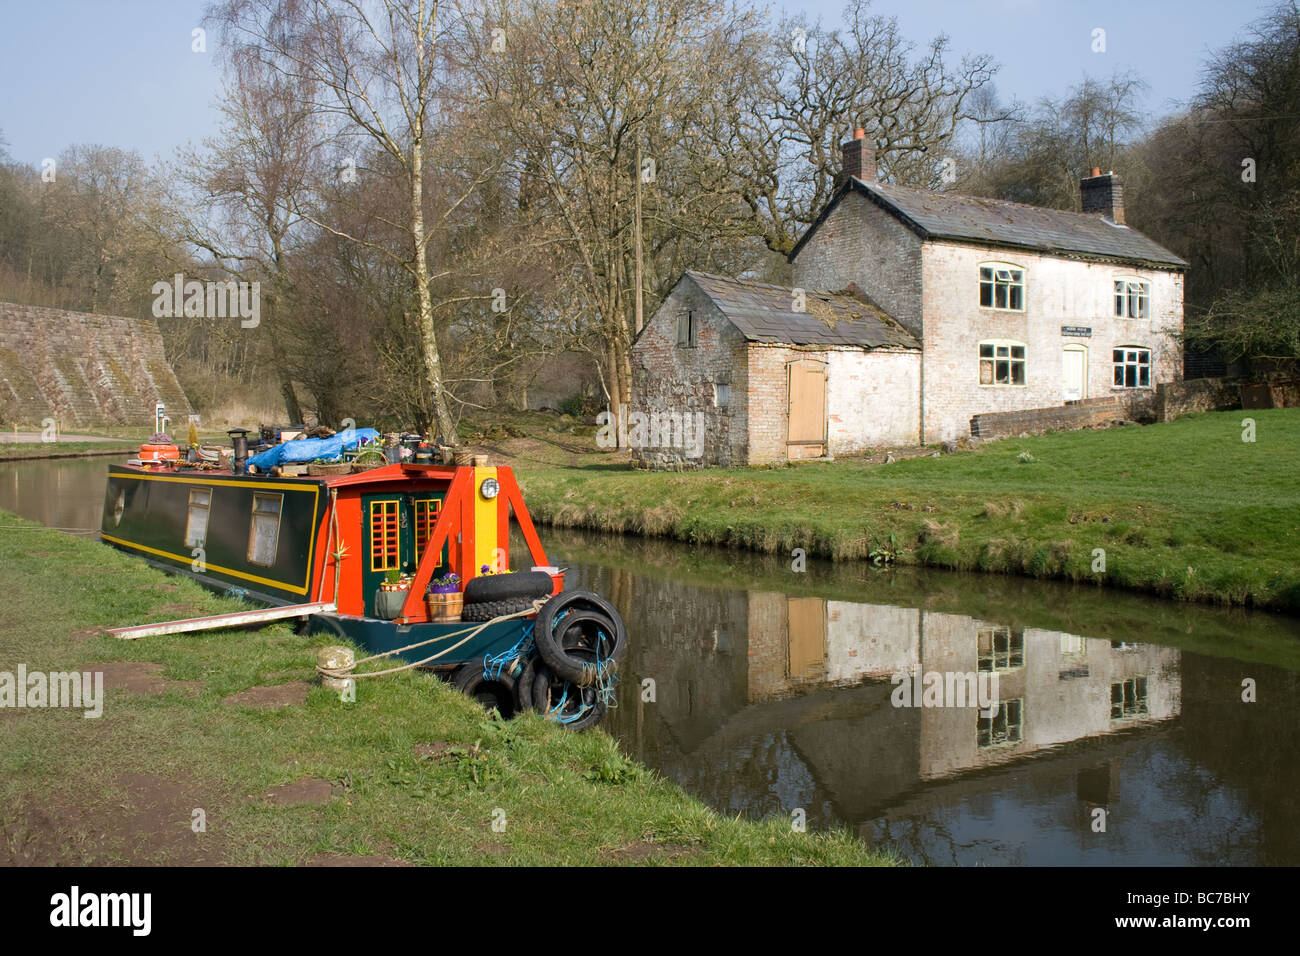 Cauldon Canal Consall Staffordshire 19th April 2009 - Stock Image